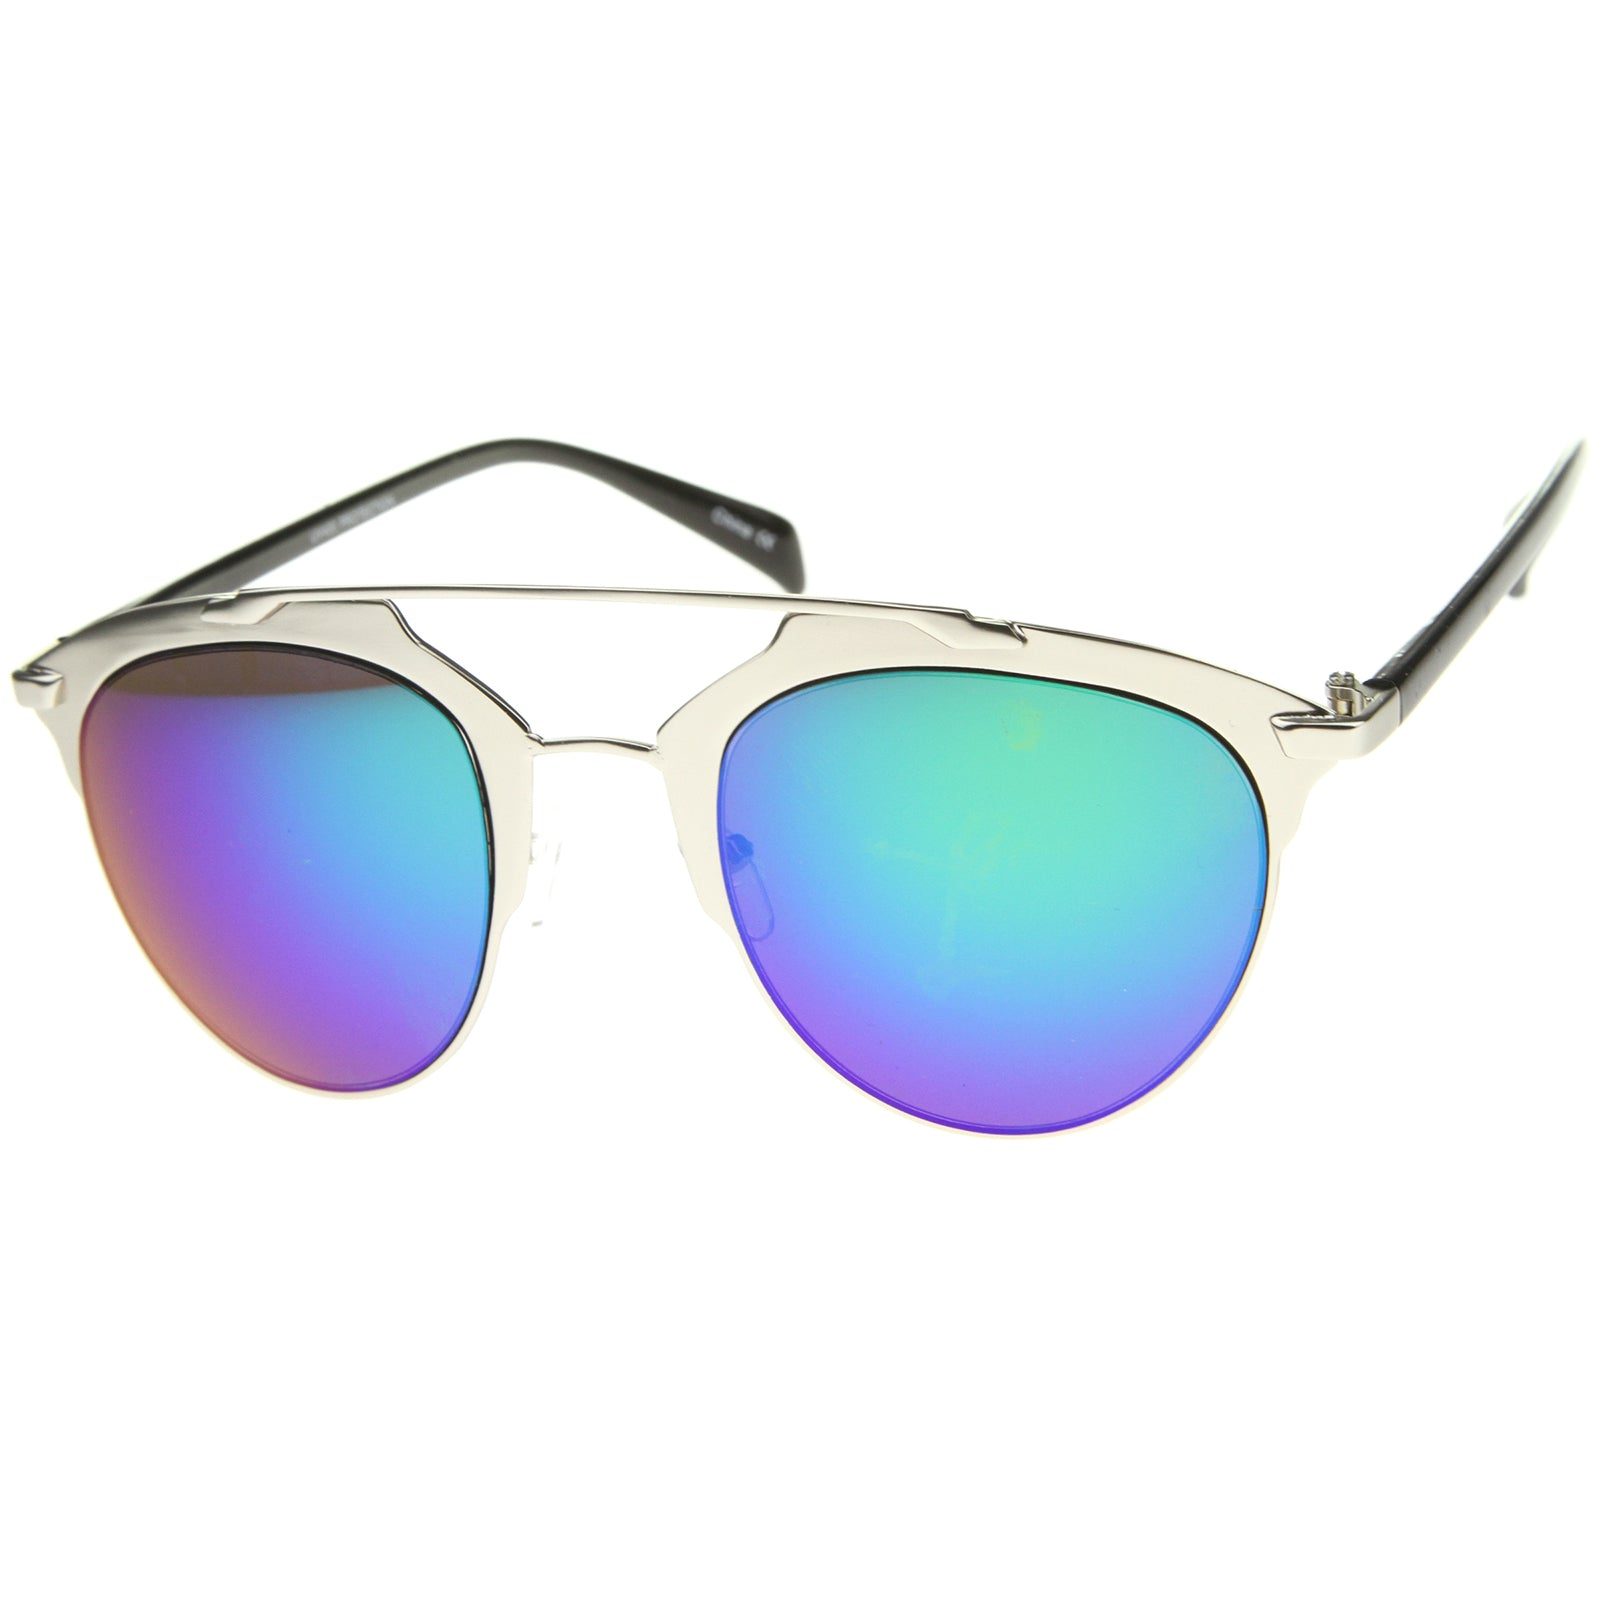 Modern Fashion Metal Double Bridge Mirror Lens Pantos Aviator Sunglasses 50mm - sunglass.la - 14